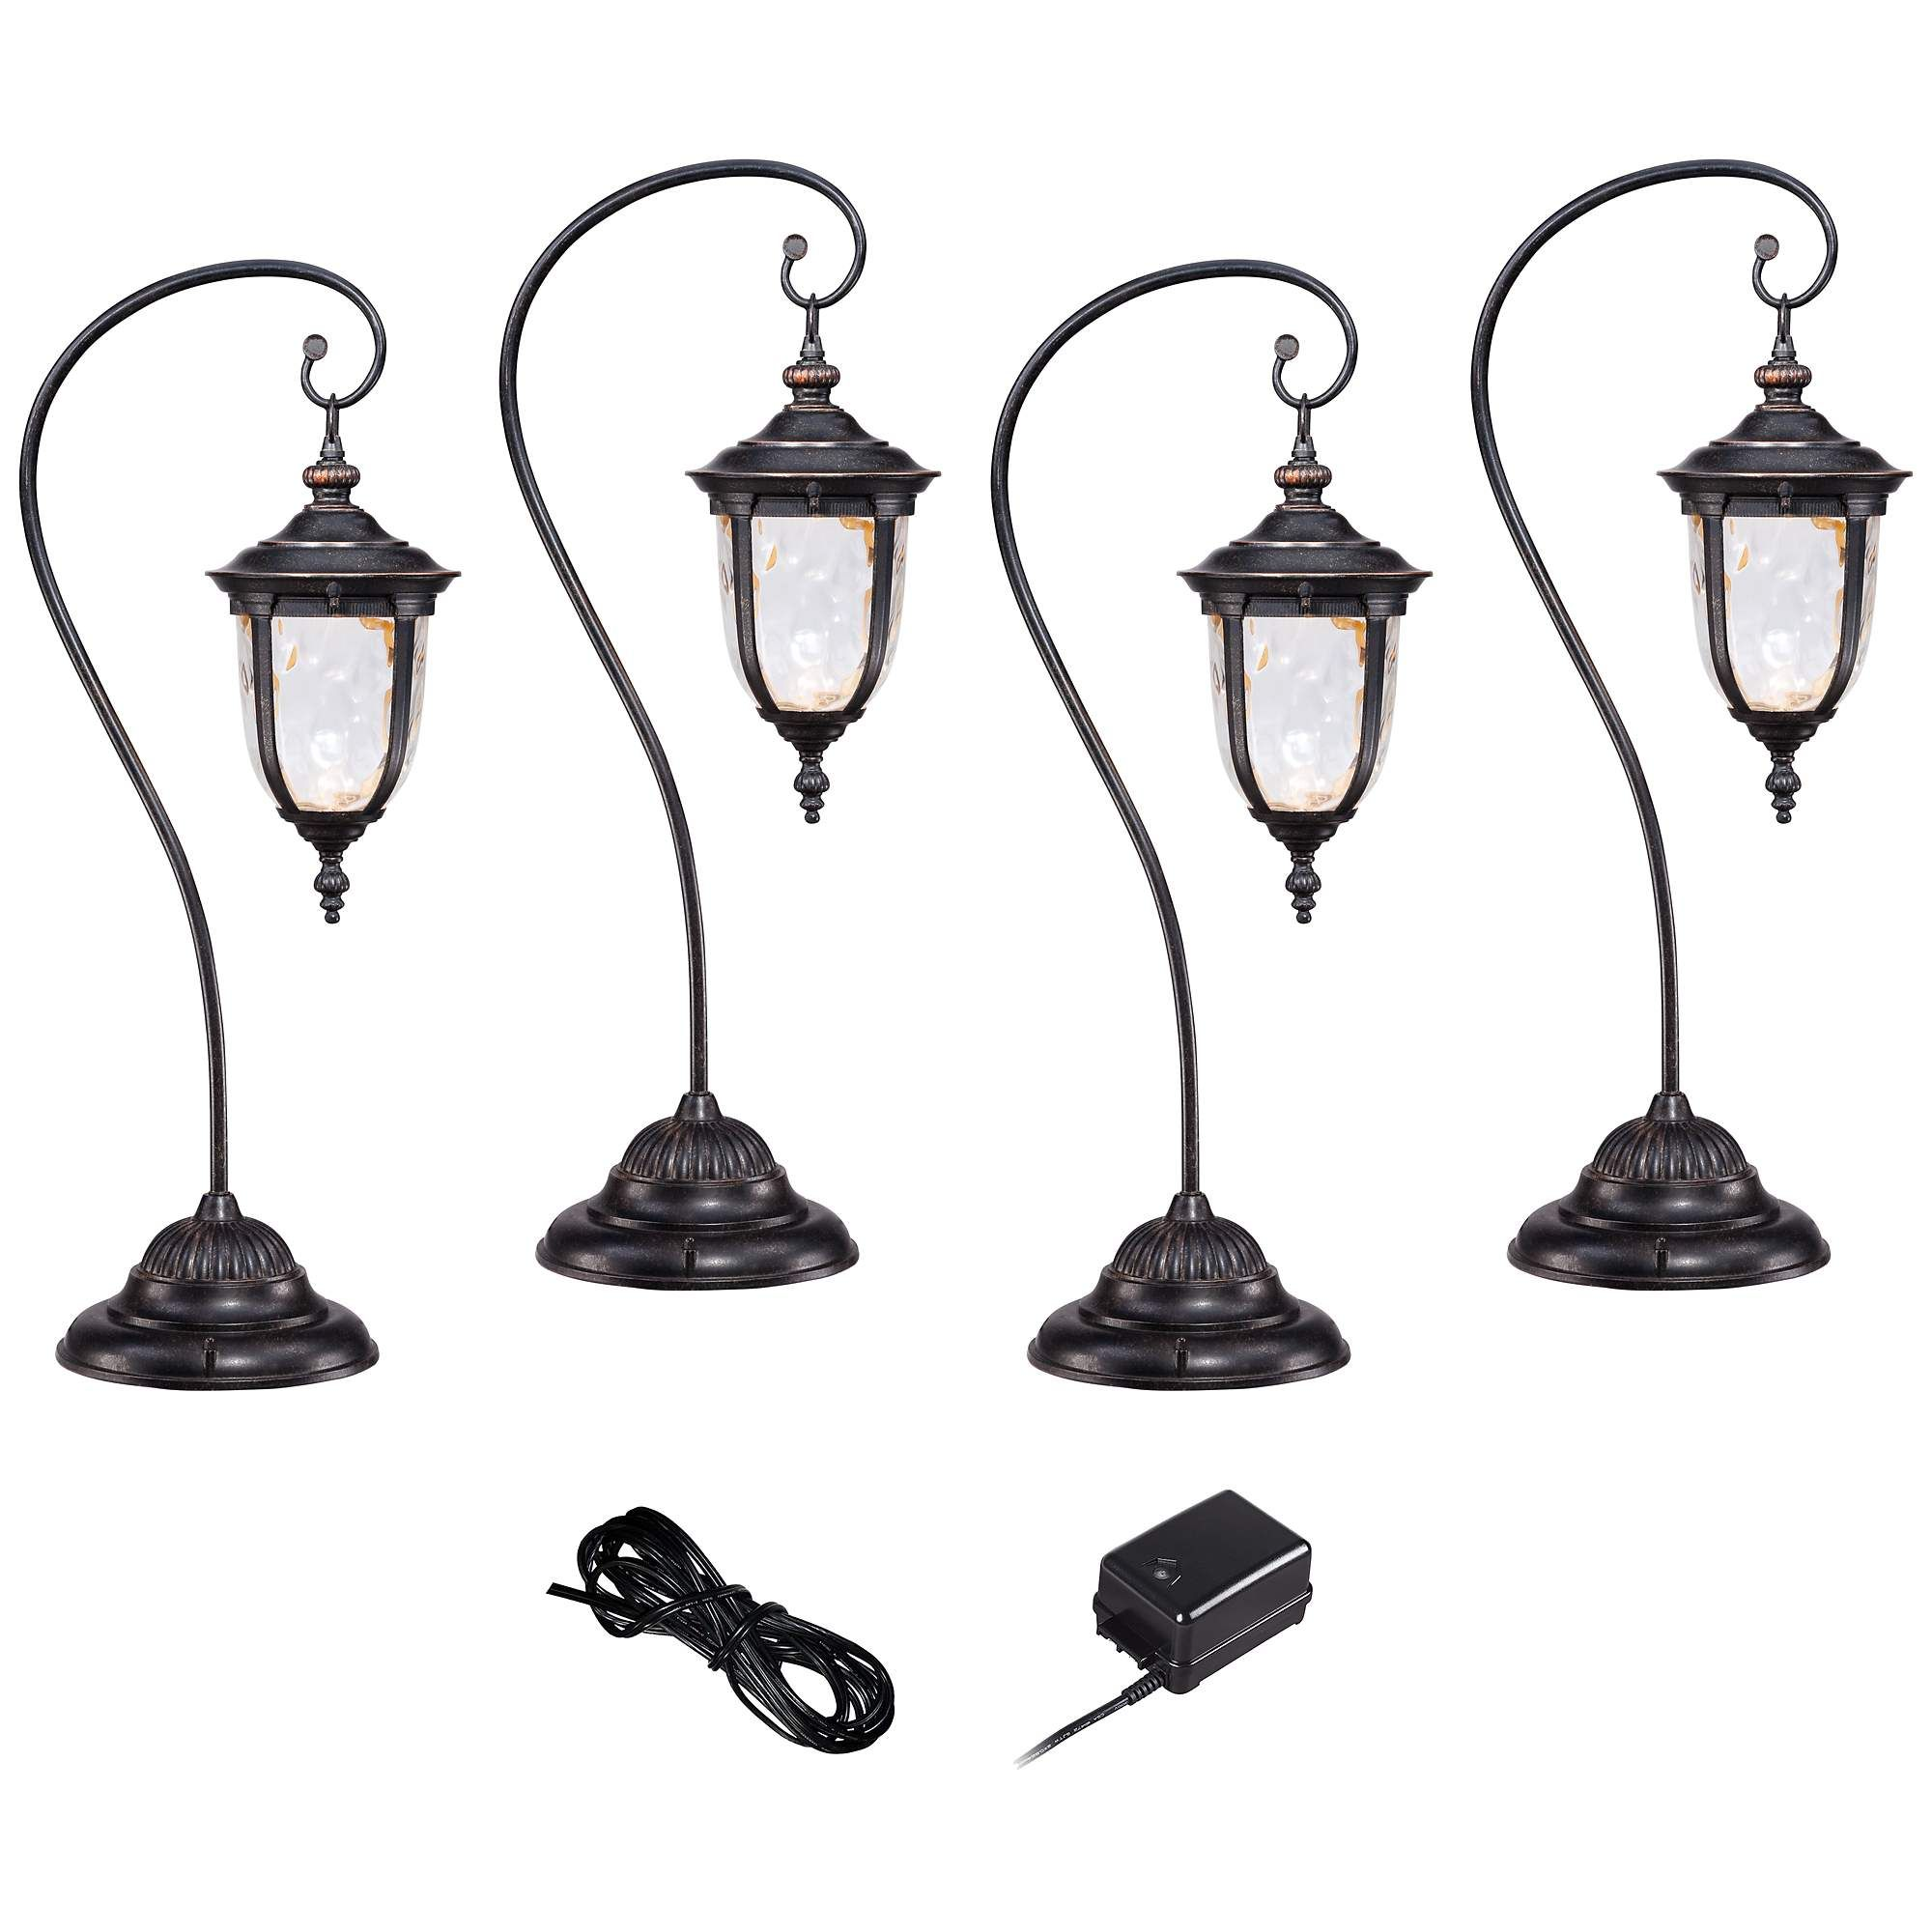 Bellagio Bronze 6 Piece Led Landscape Light Kit Set